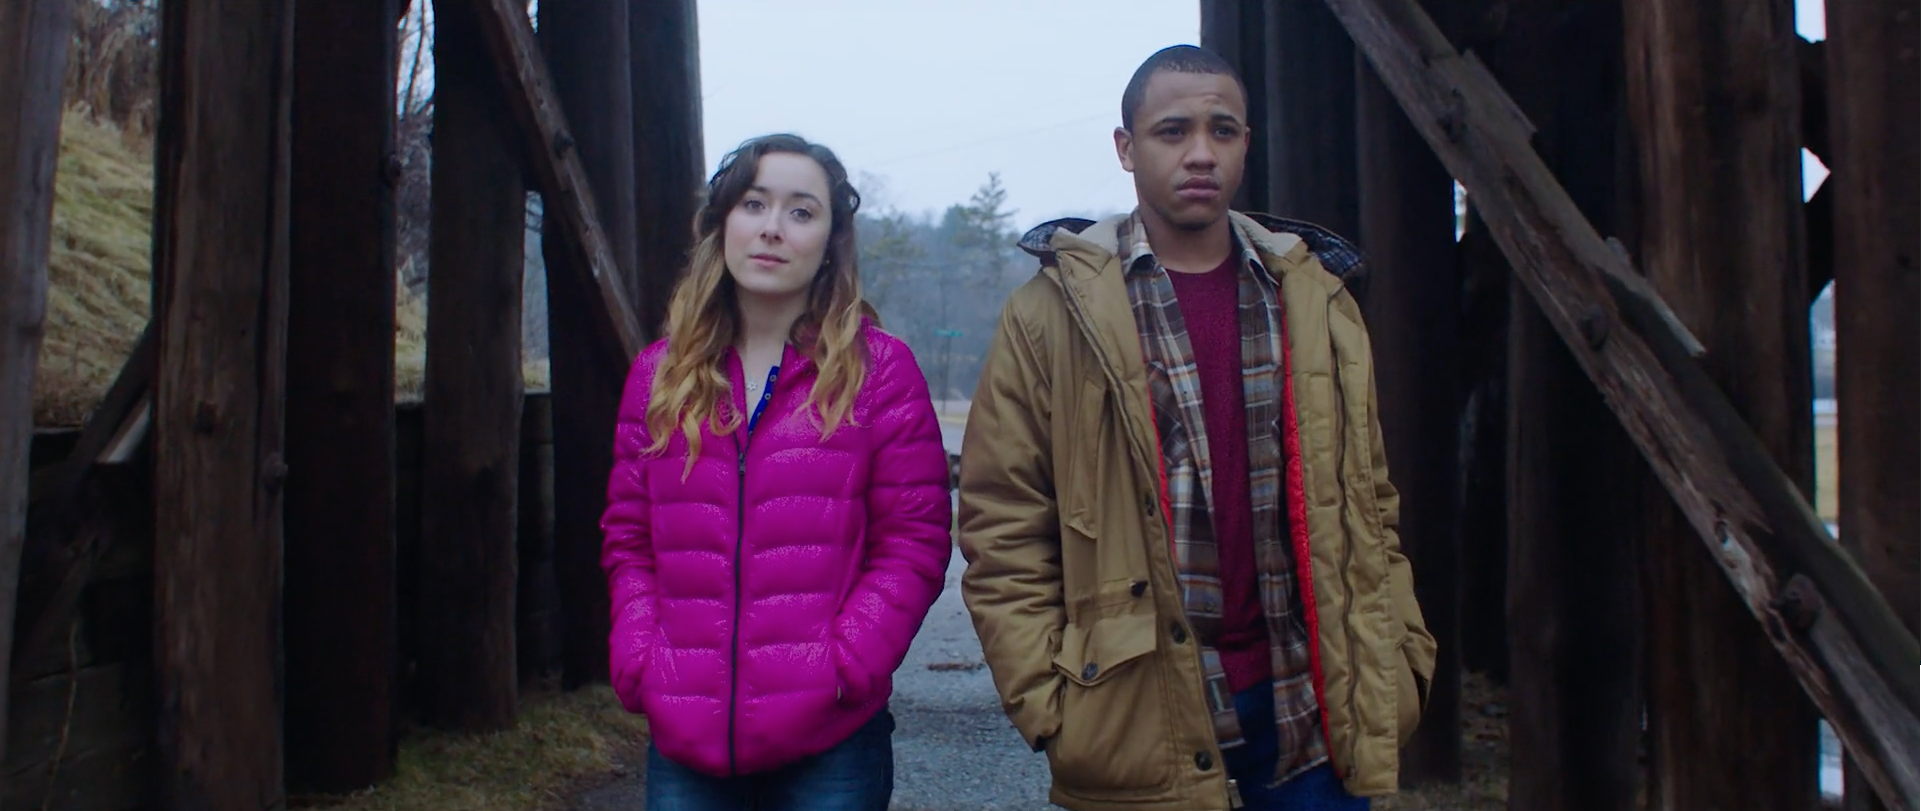 NYCIFF: 'Nowhere, Michigan' can be a dangerous place